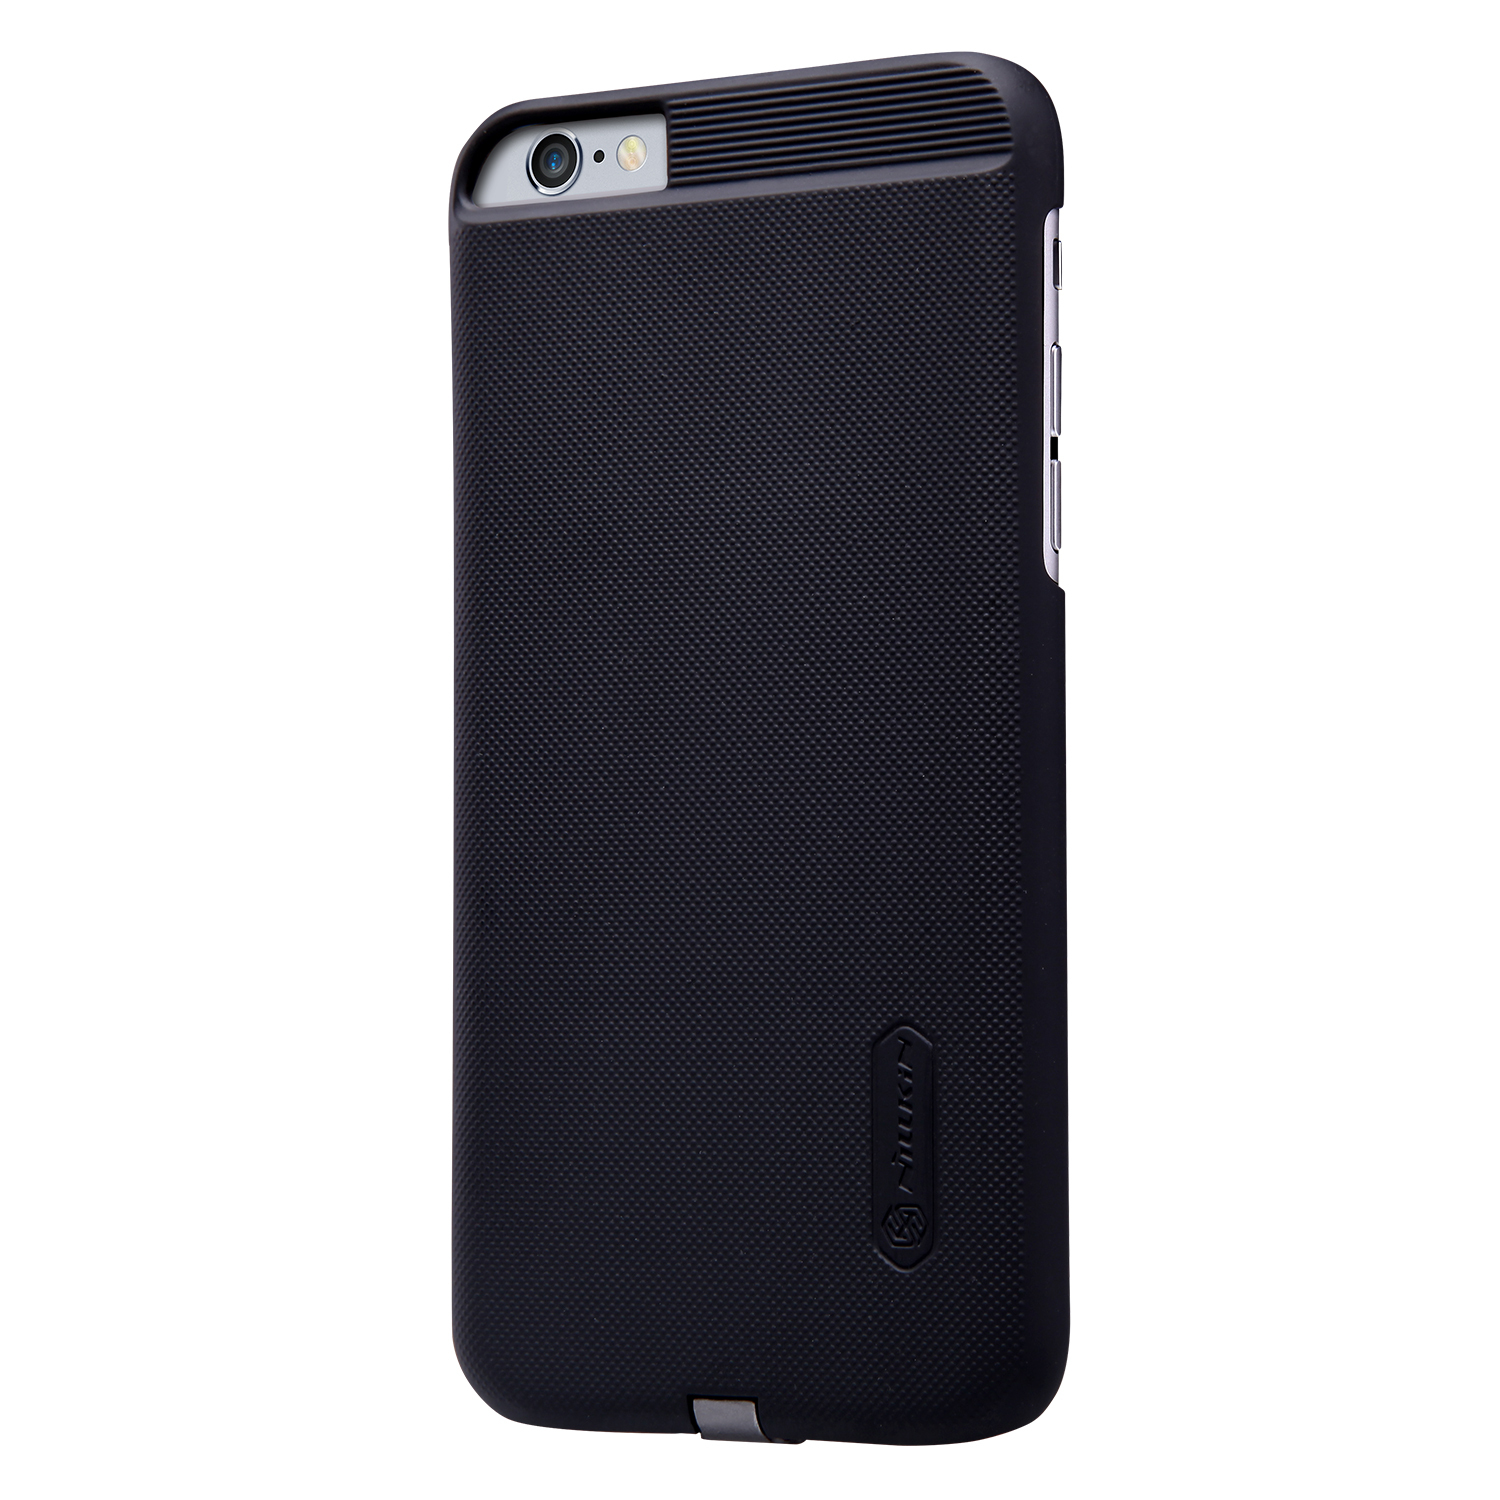 iPhone 6/6s Чехол-ресивер magic case для Apple Iphone 6/6s - i620 10.jpg